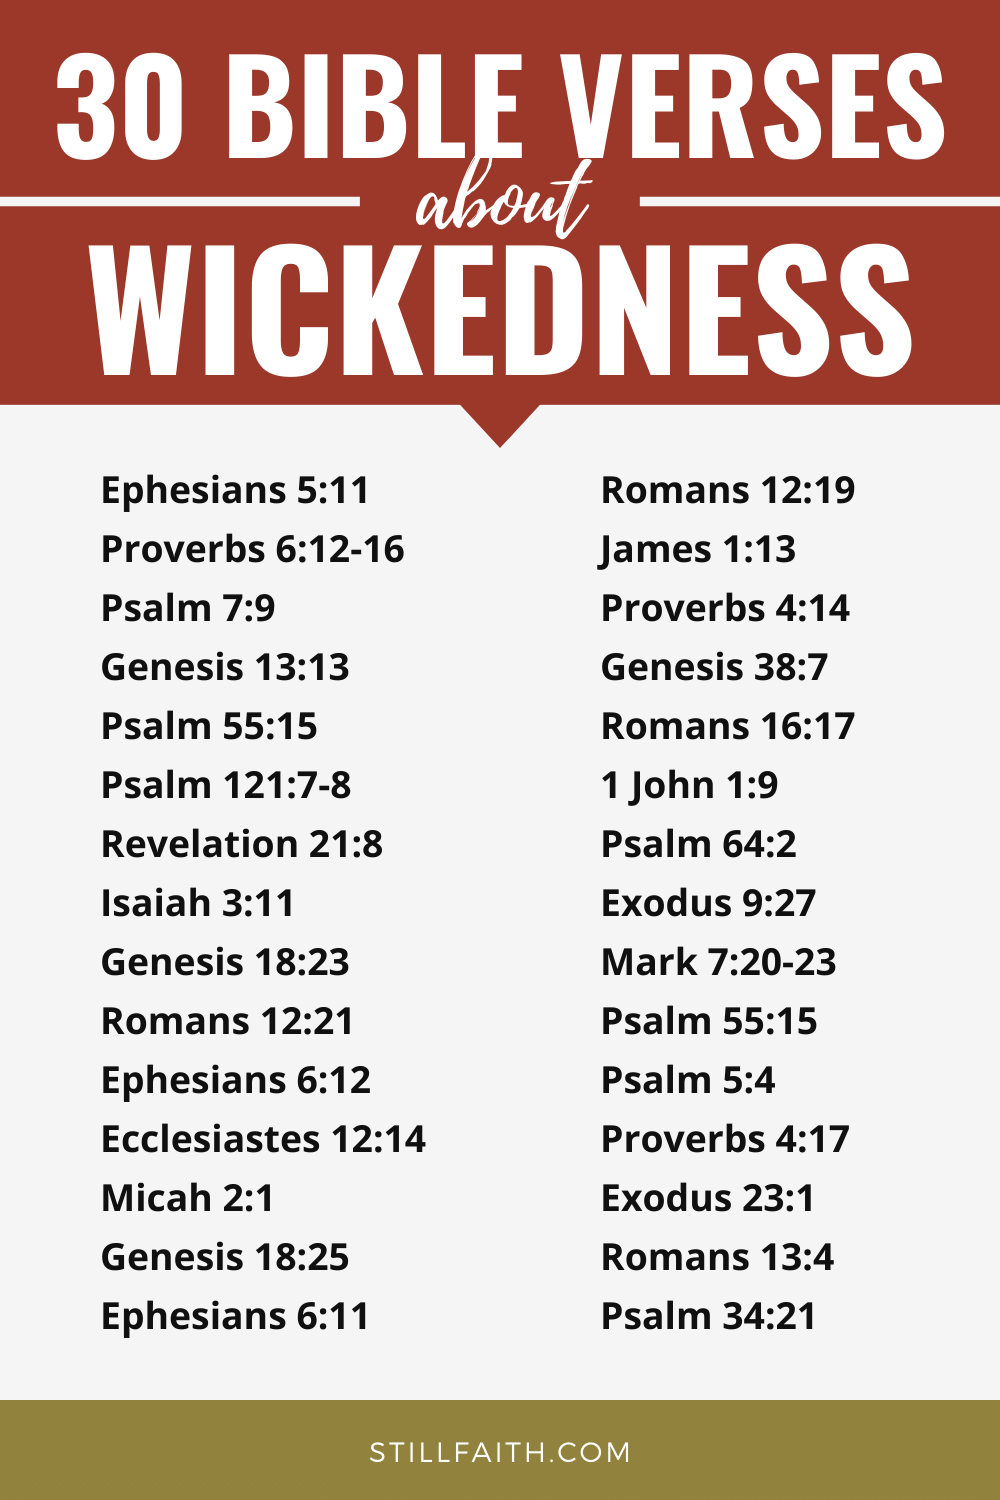 500 Bible Verses about Wickedness